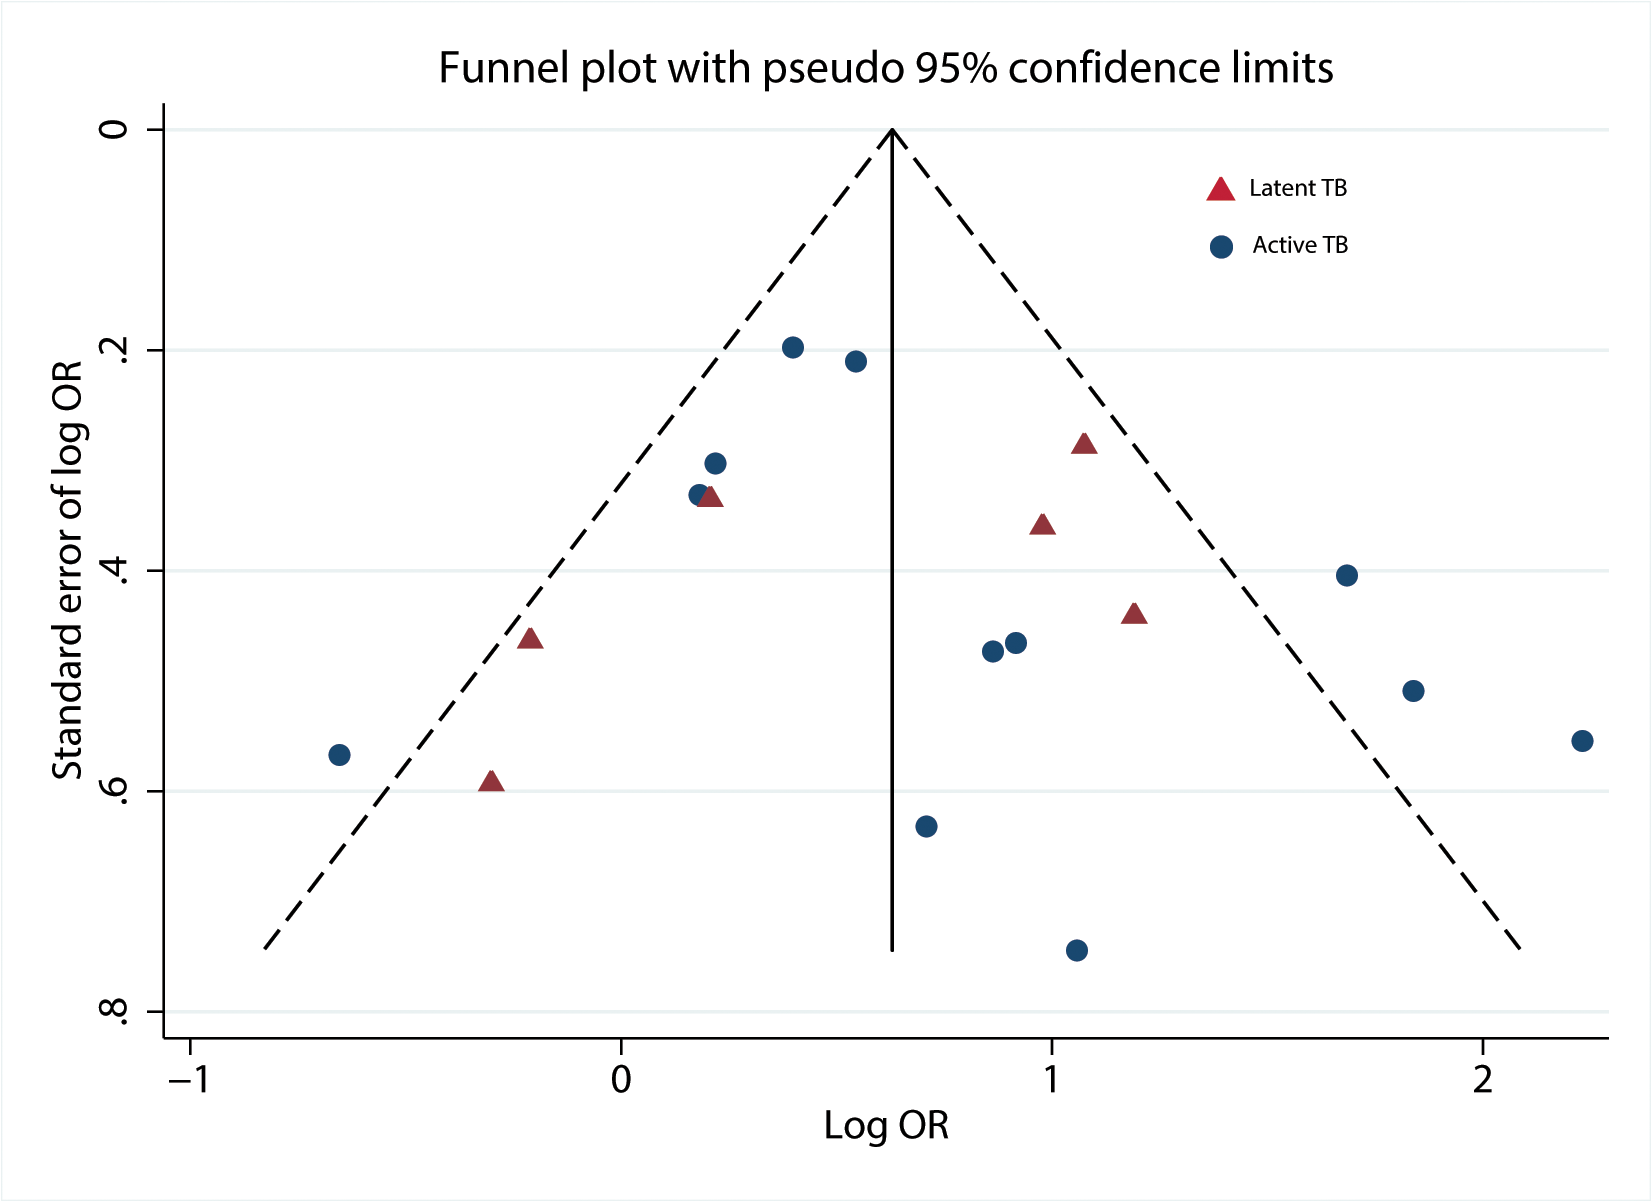 Funnel plot with pseudo 95% confidence limits.